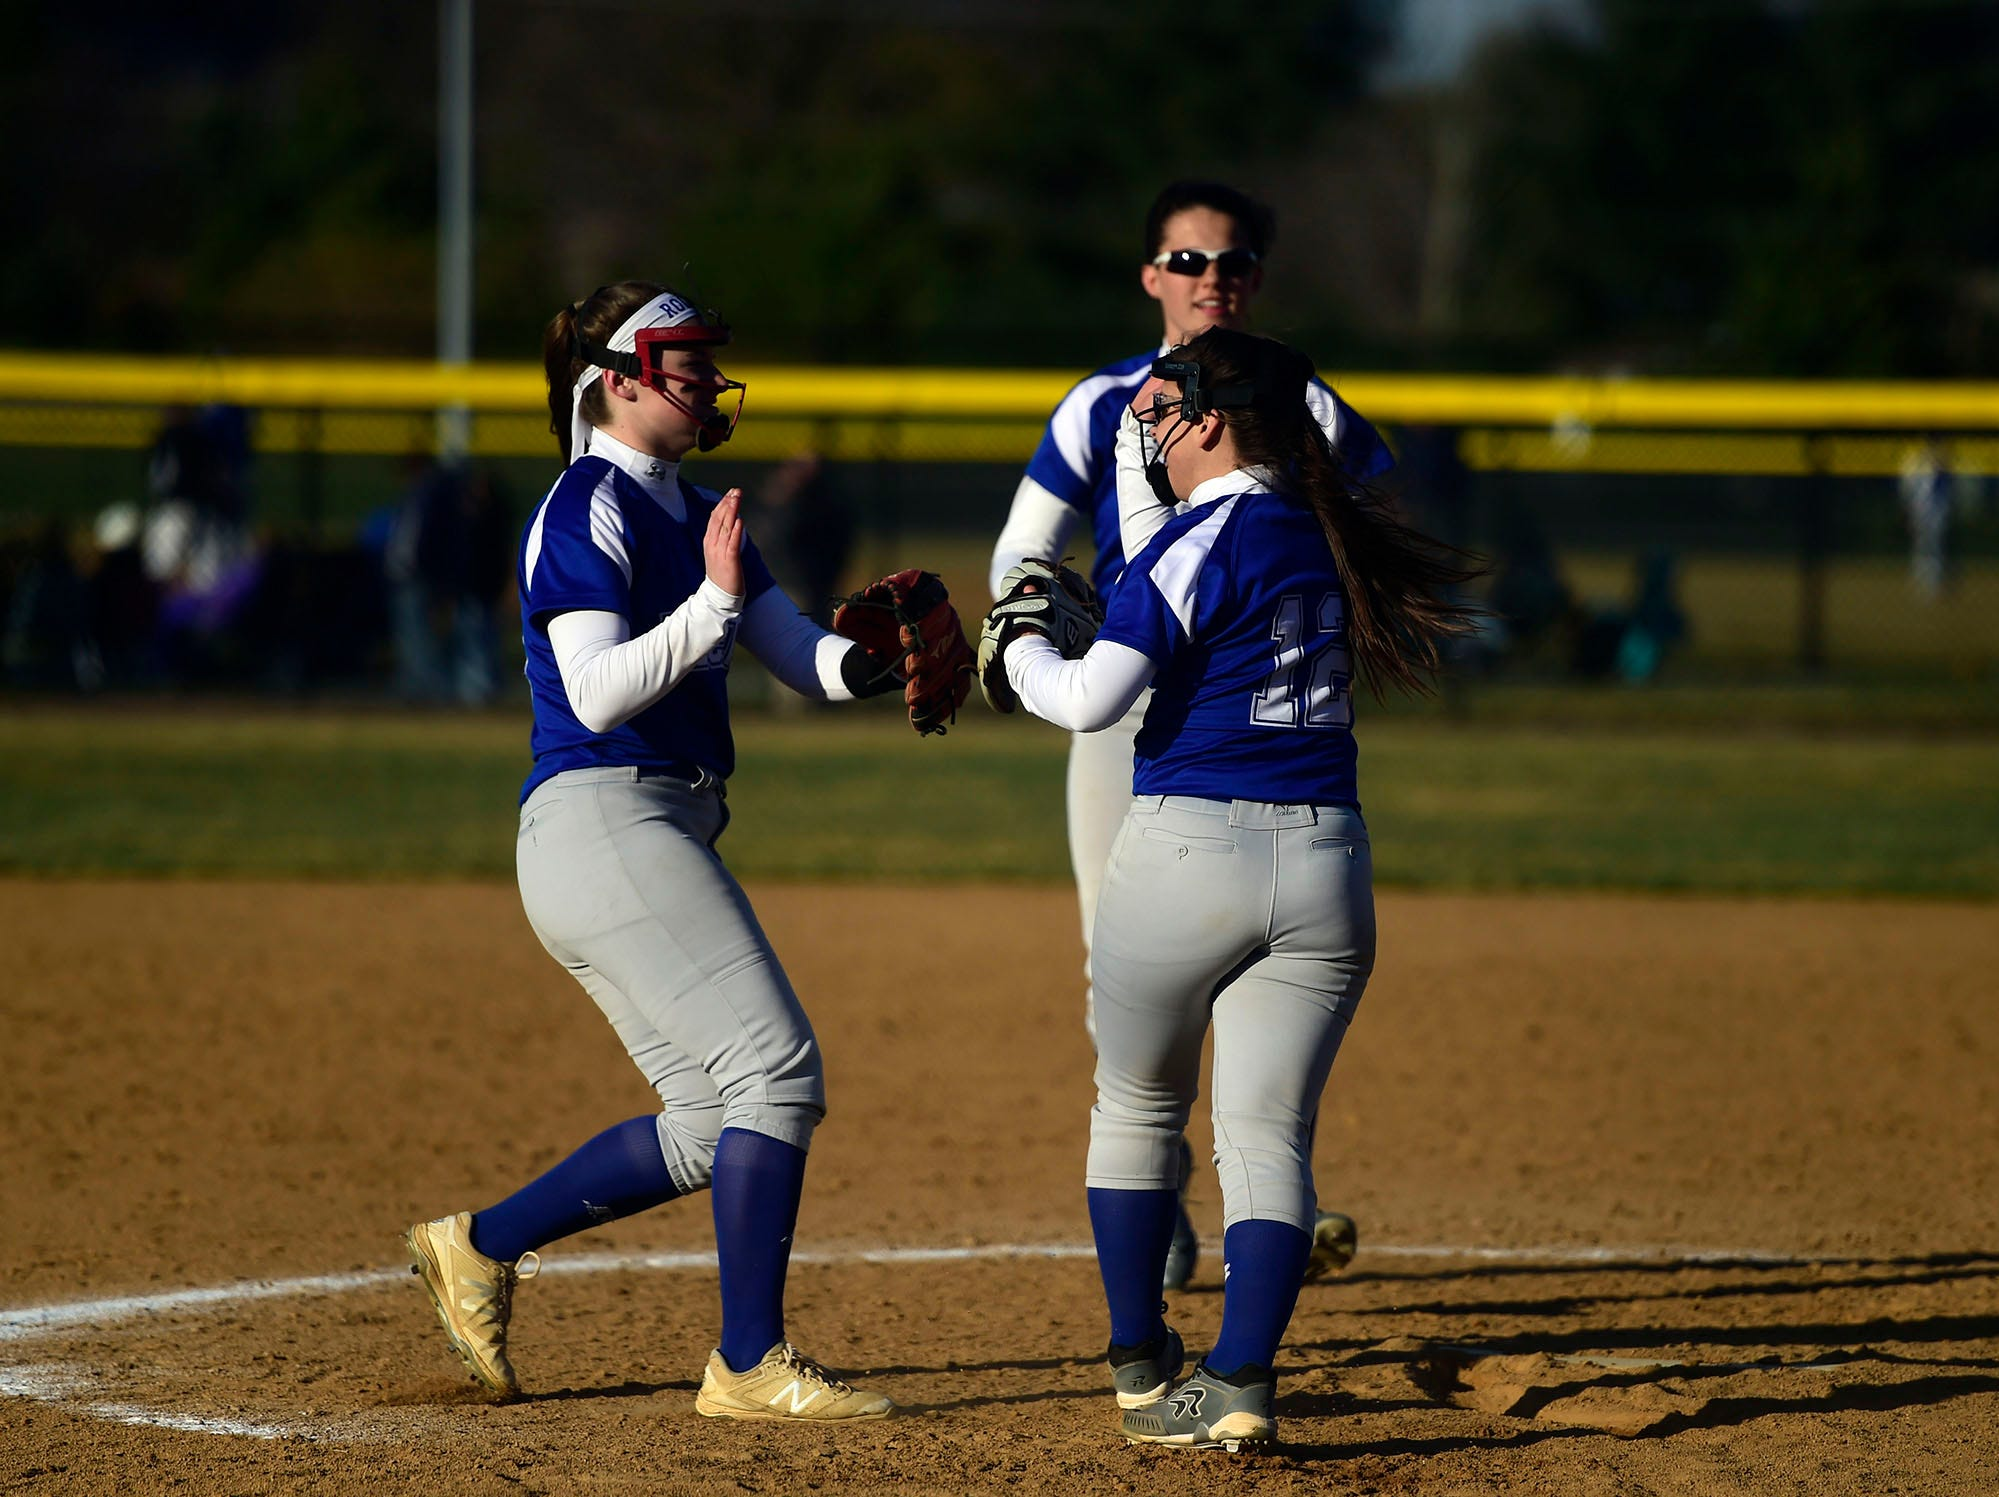 Spring Grove relief pitcher Sara Jones celebrates with third baseman Hannah Gartrell and shortstop Kristen Moore after a strikeout. Jones pitched the final three innings to preserve the win. She struck out six and didn't walk a batter.